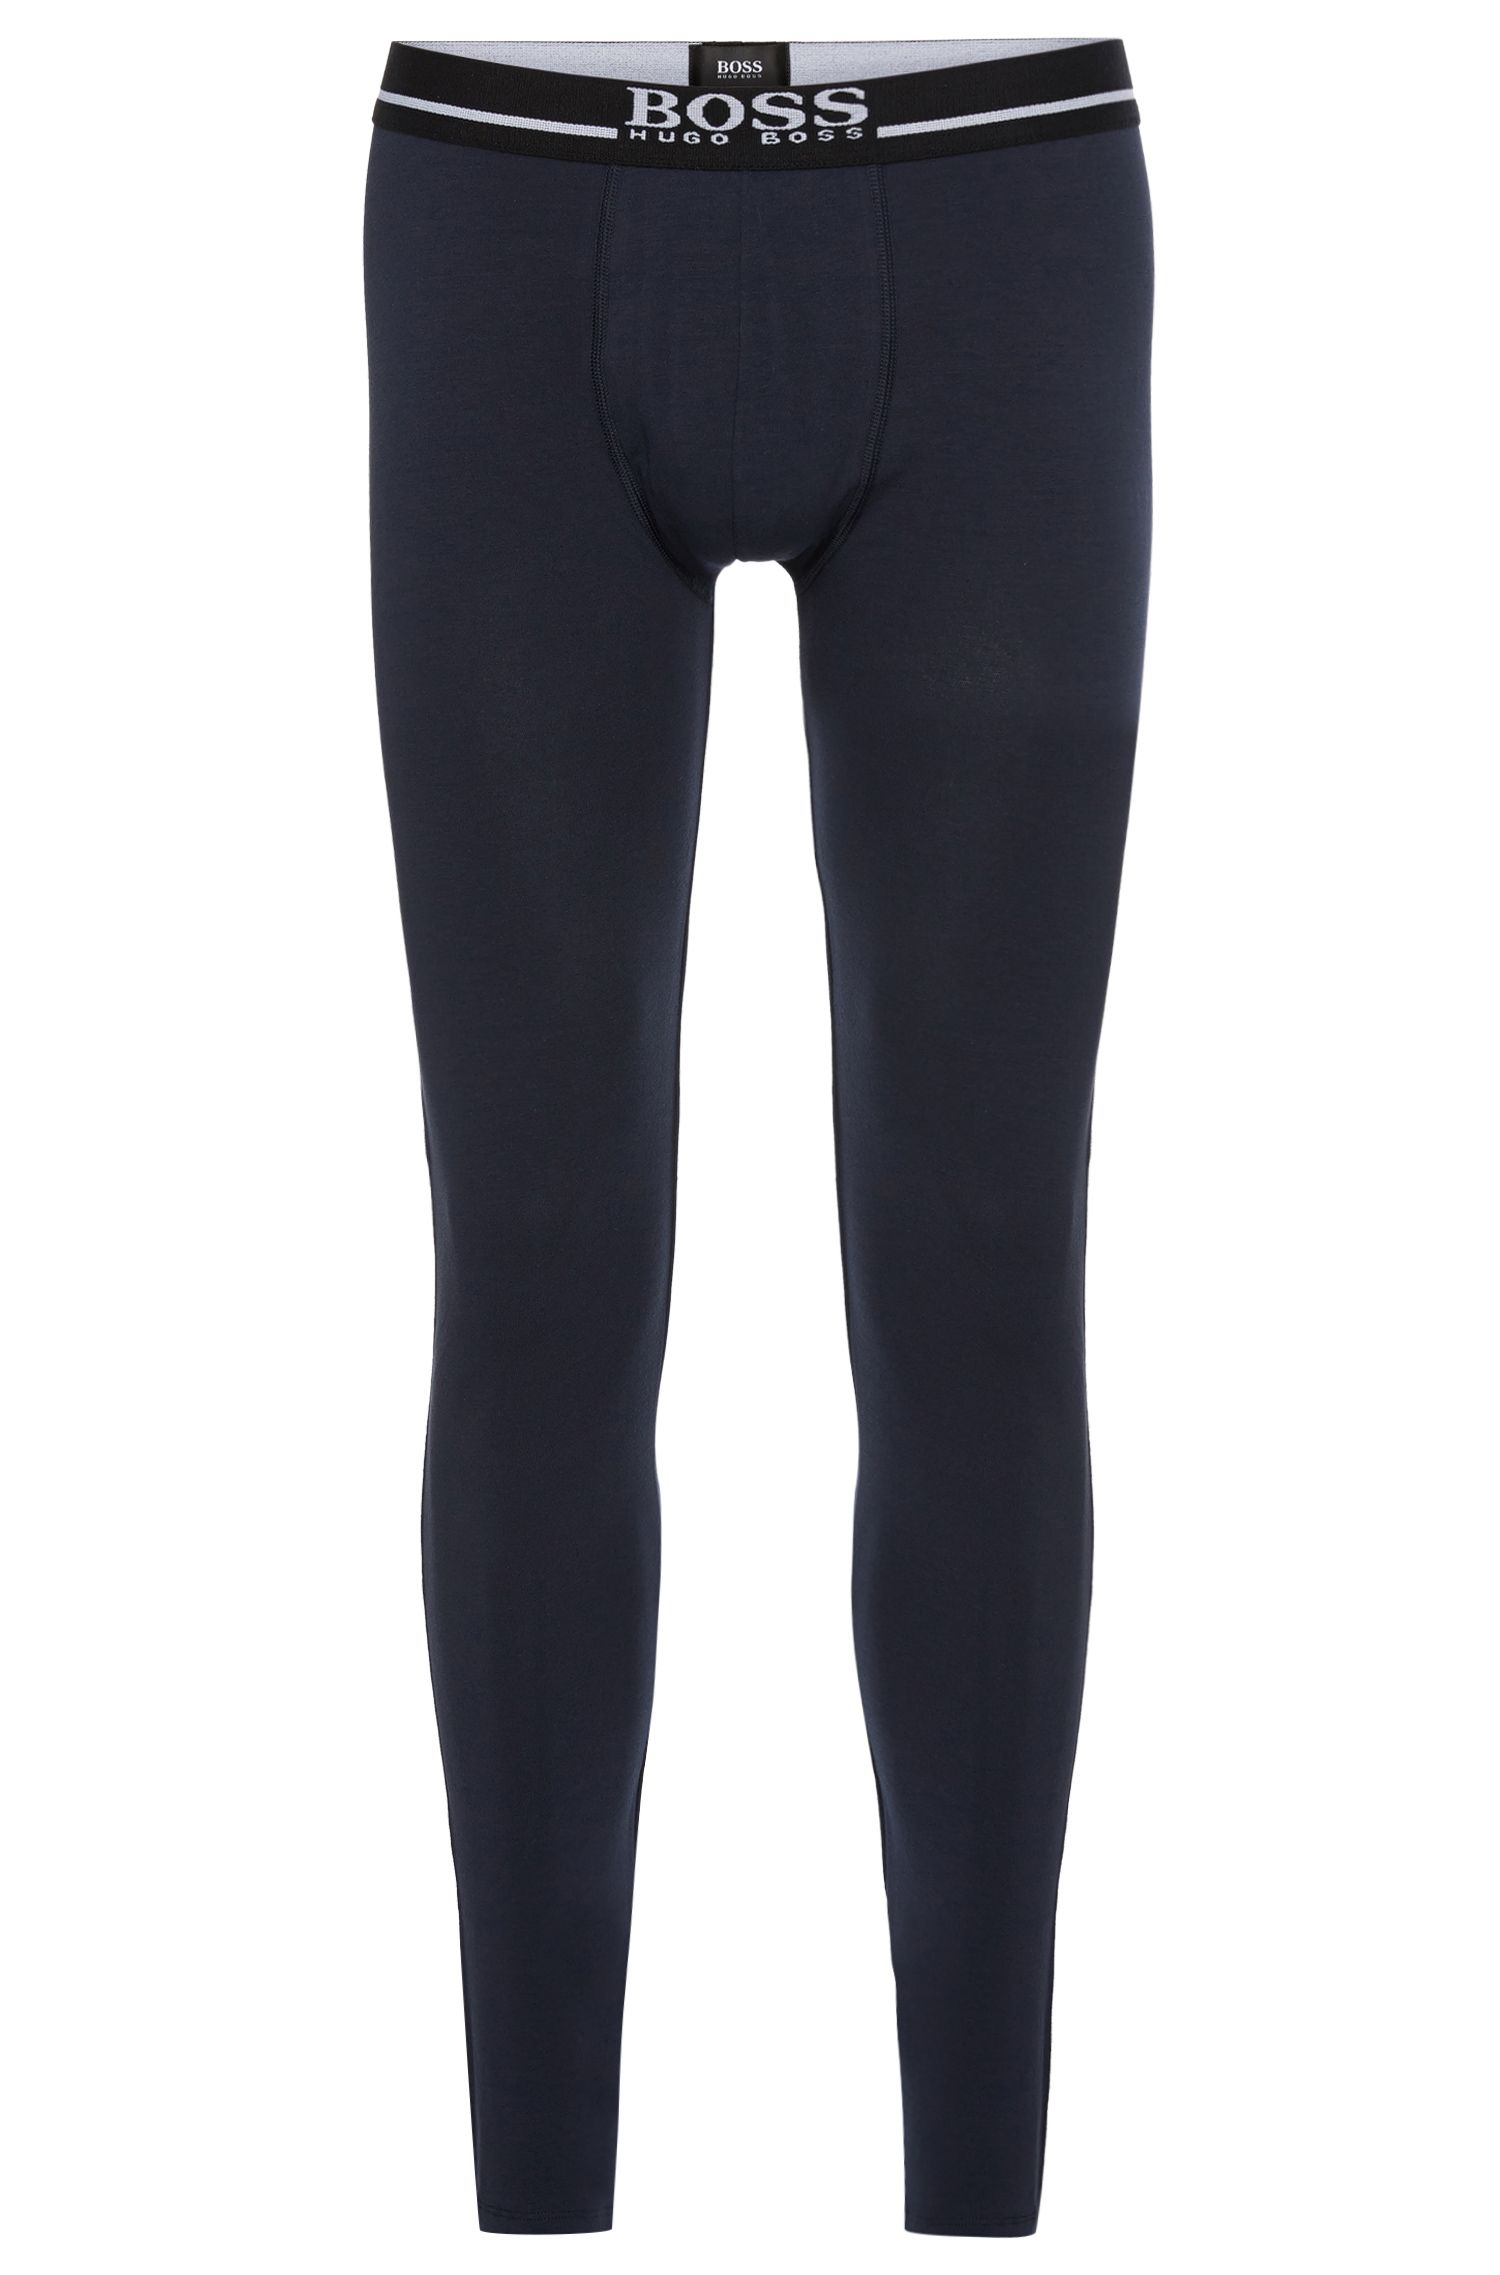 'Long John' | Stretch Cotton Long Johns